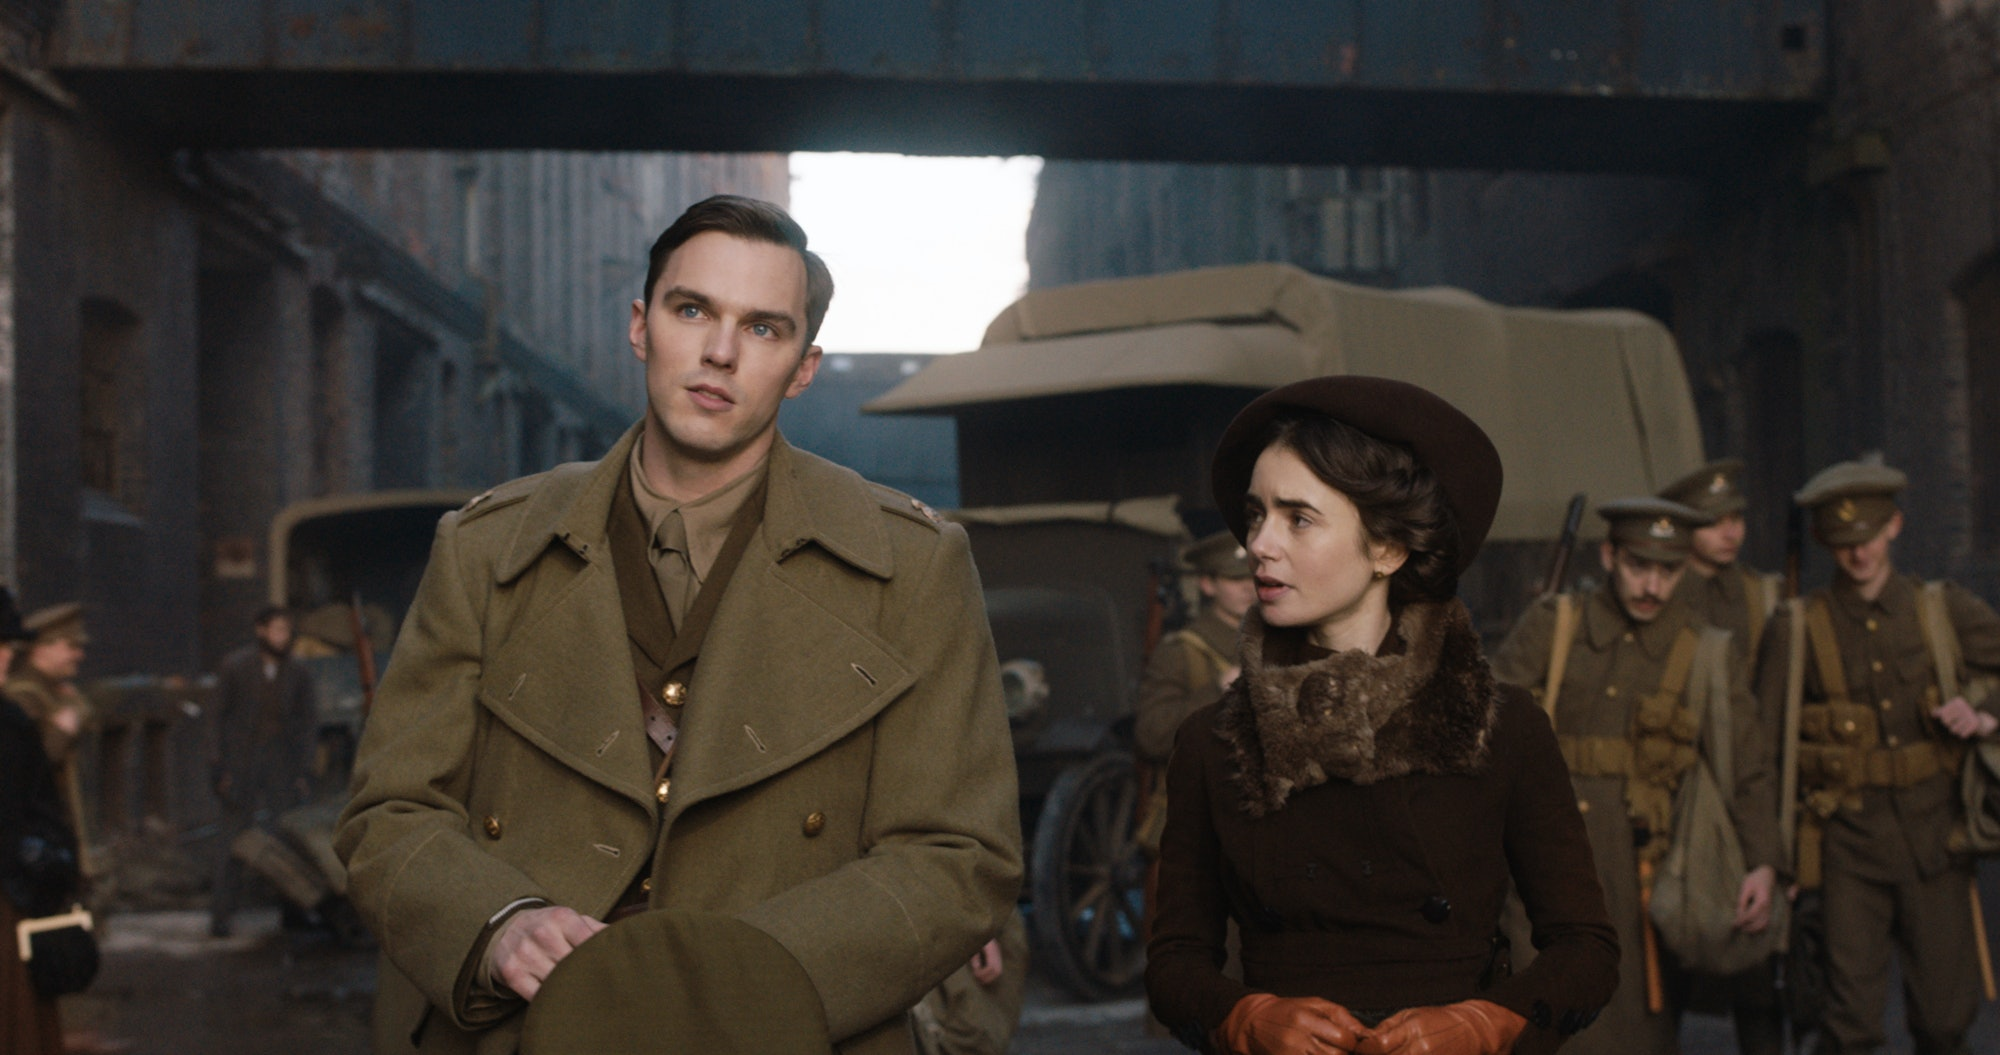 Nicholas Hoult and Lily Collins in the film 'Tolkien.'